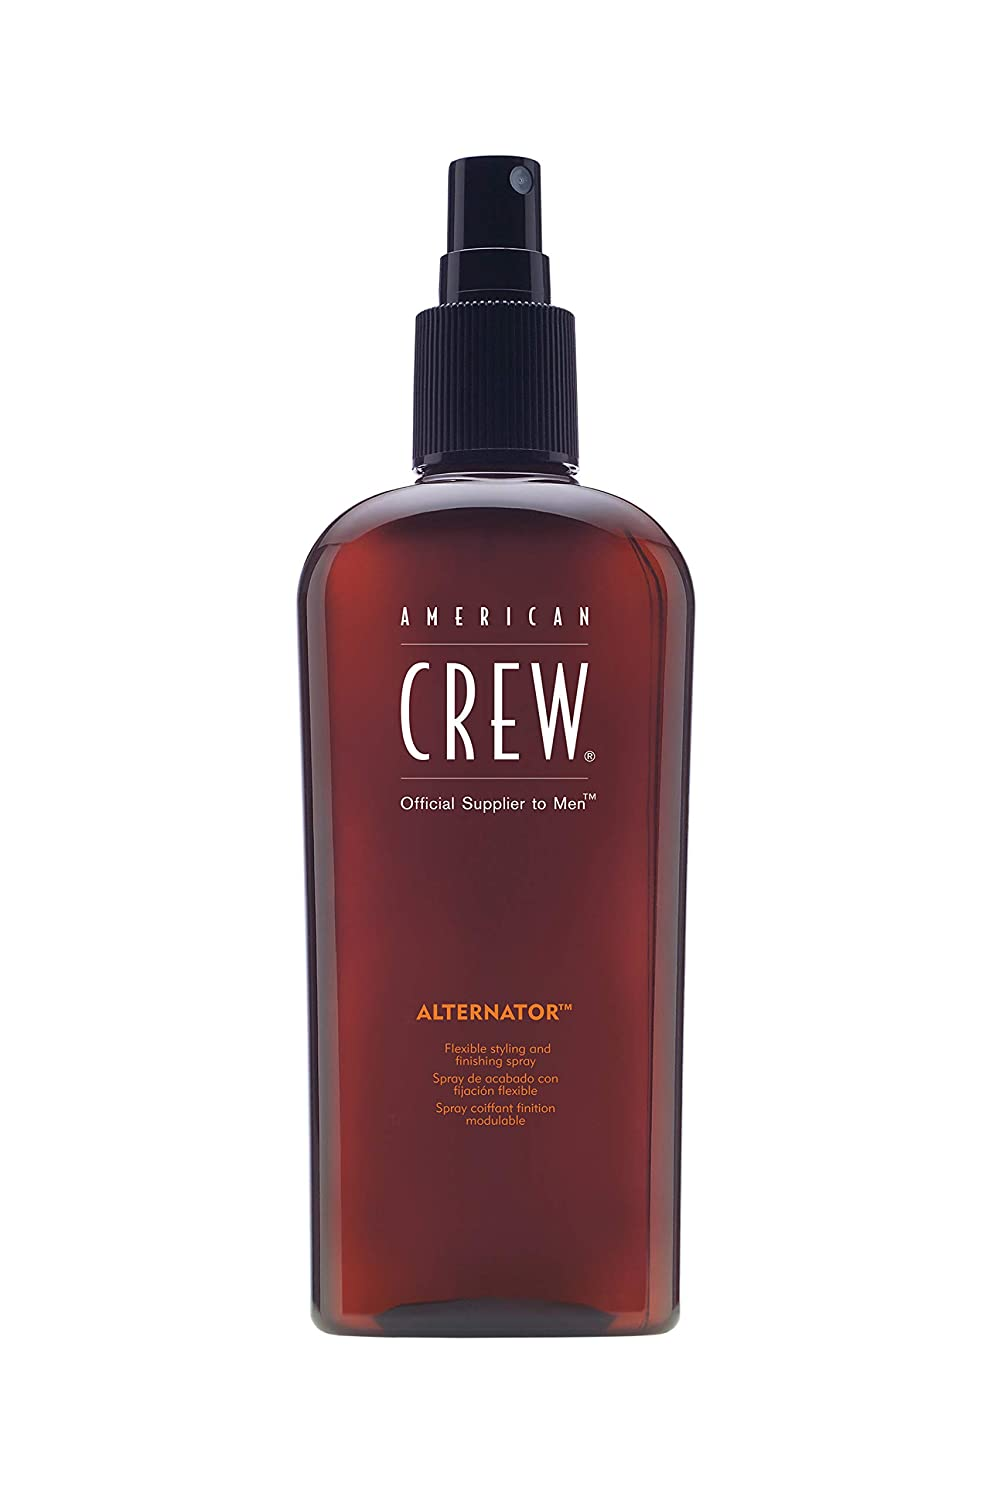 AMERICAN CREW Alternator Finishing Spray 100 ml 089000